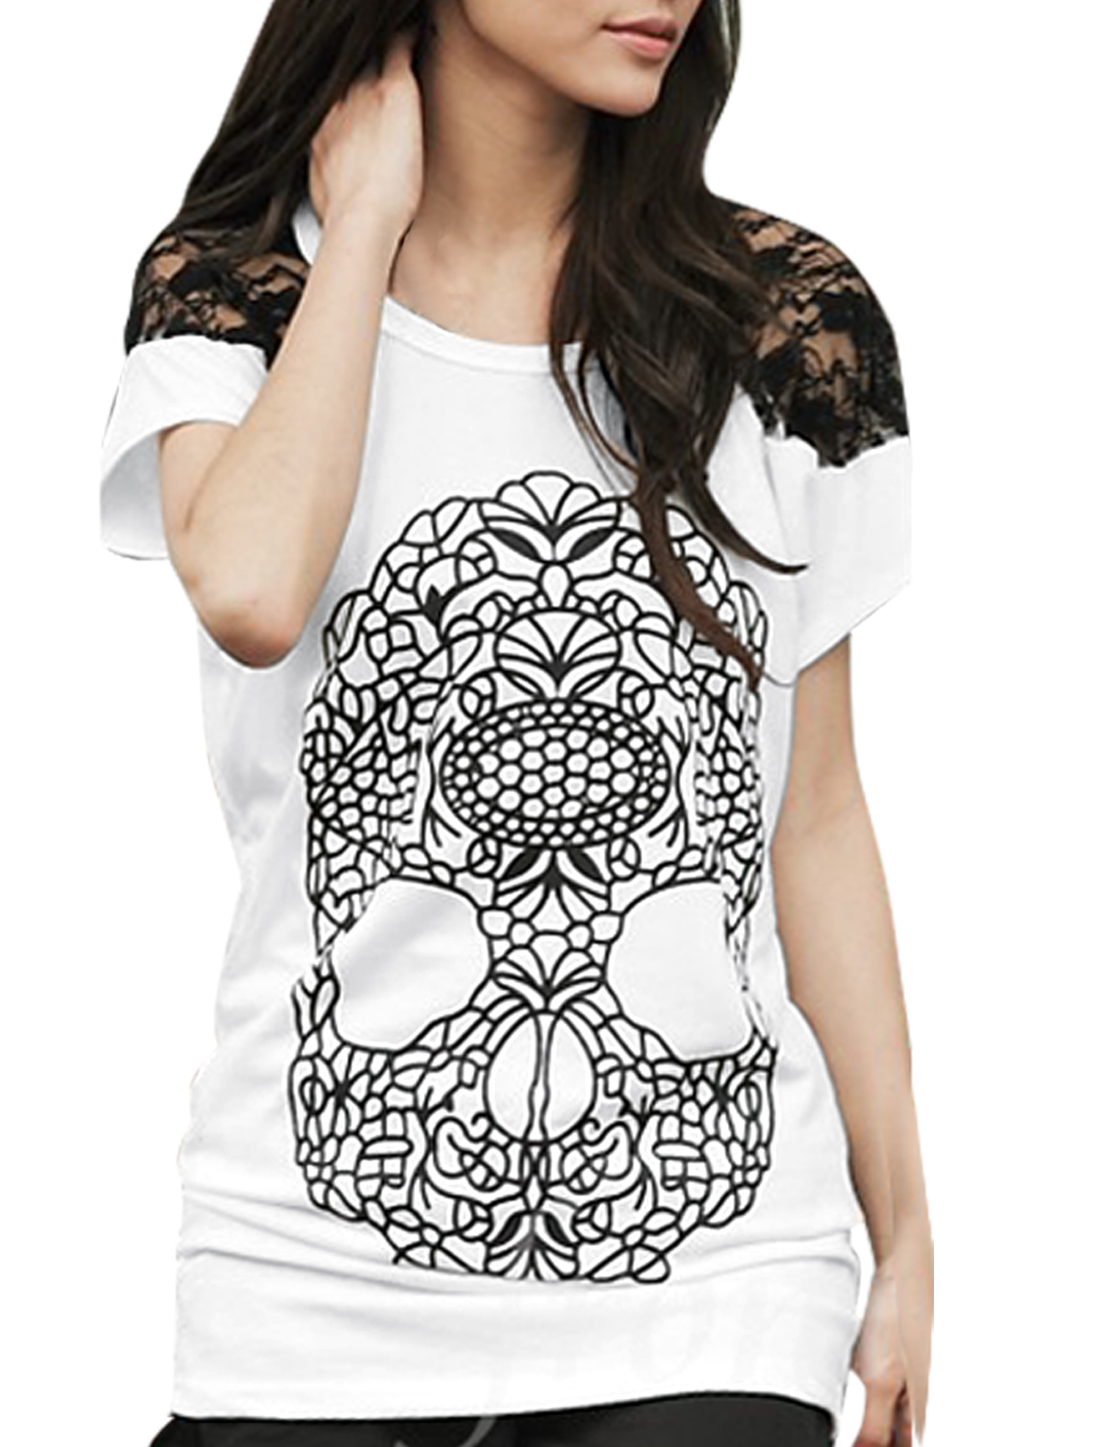 Lady Scoop Neck Short Raglan Sleeve Skull Pattern White T-Shirt L